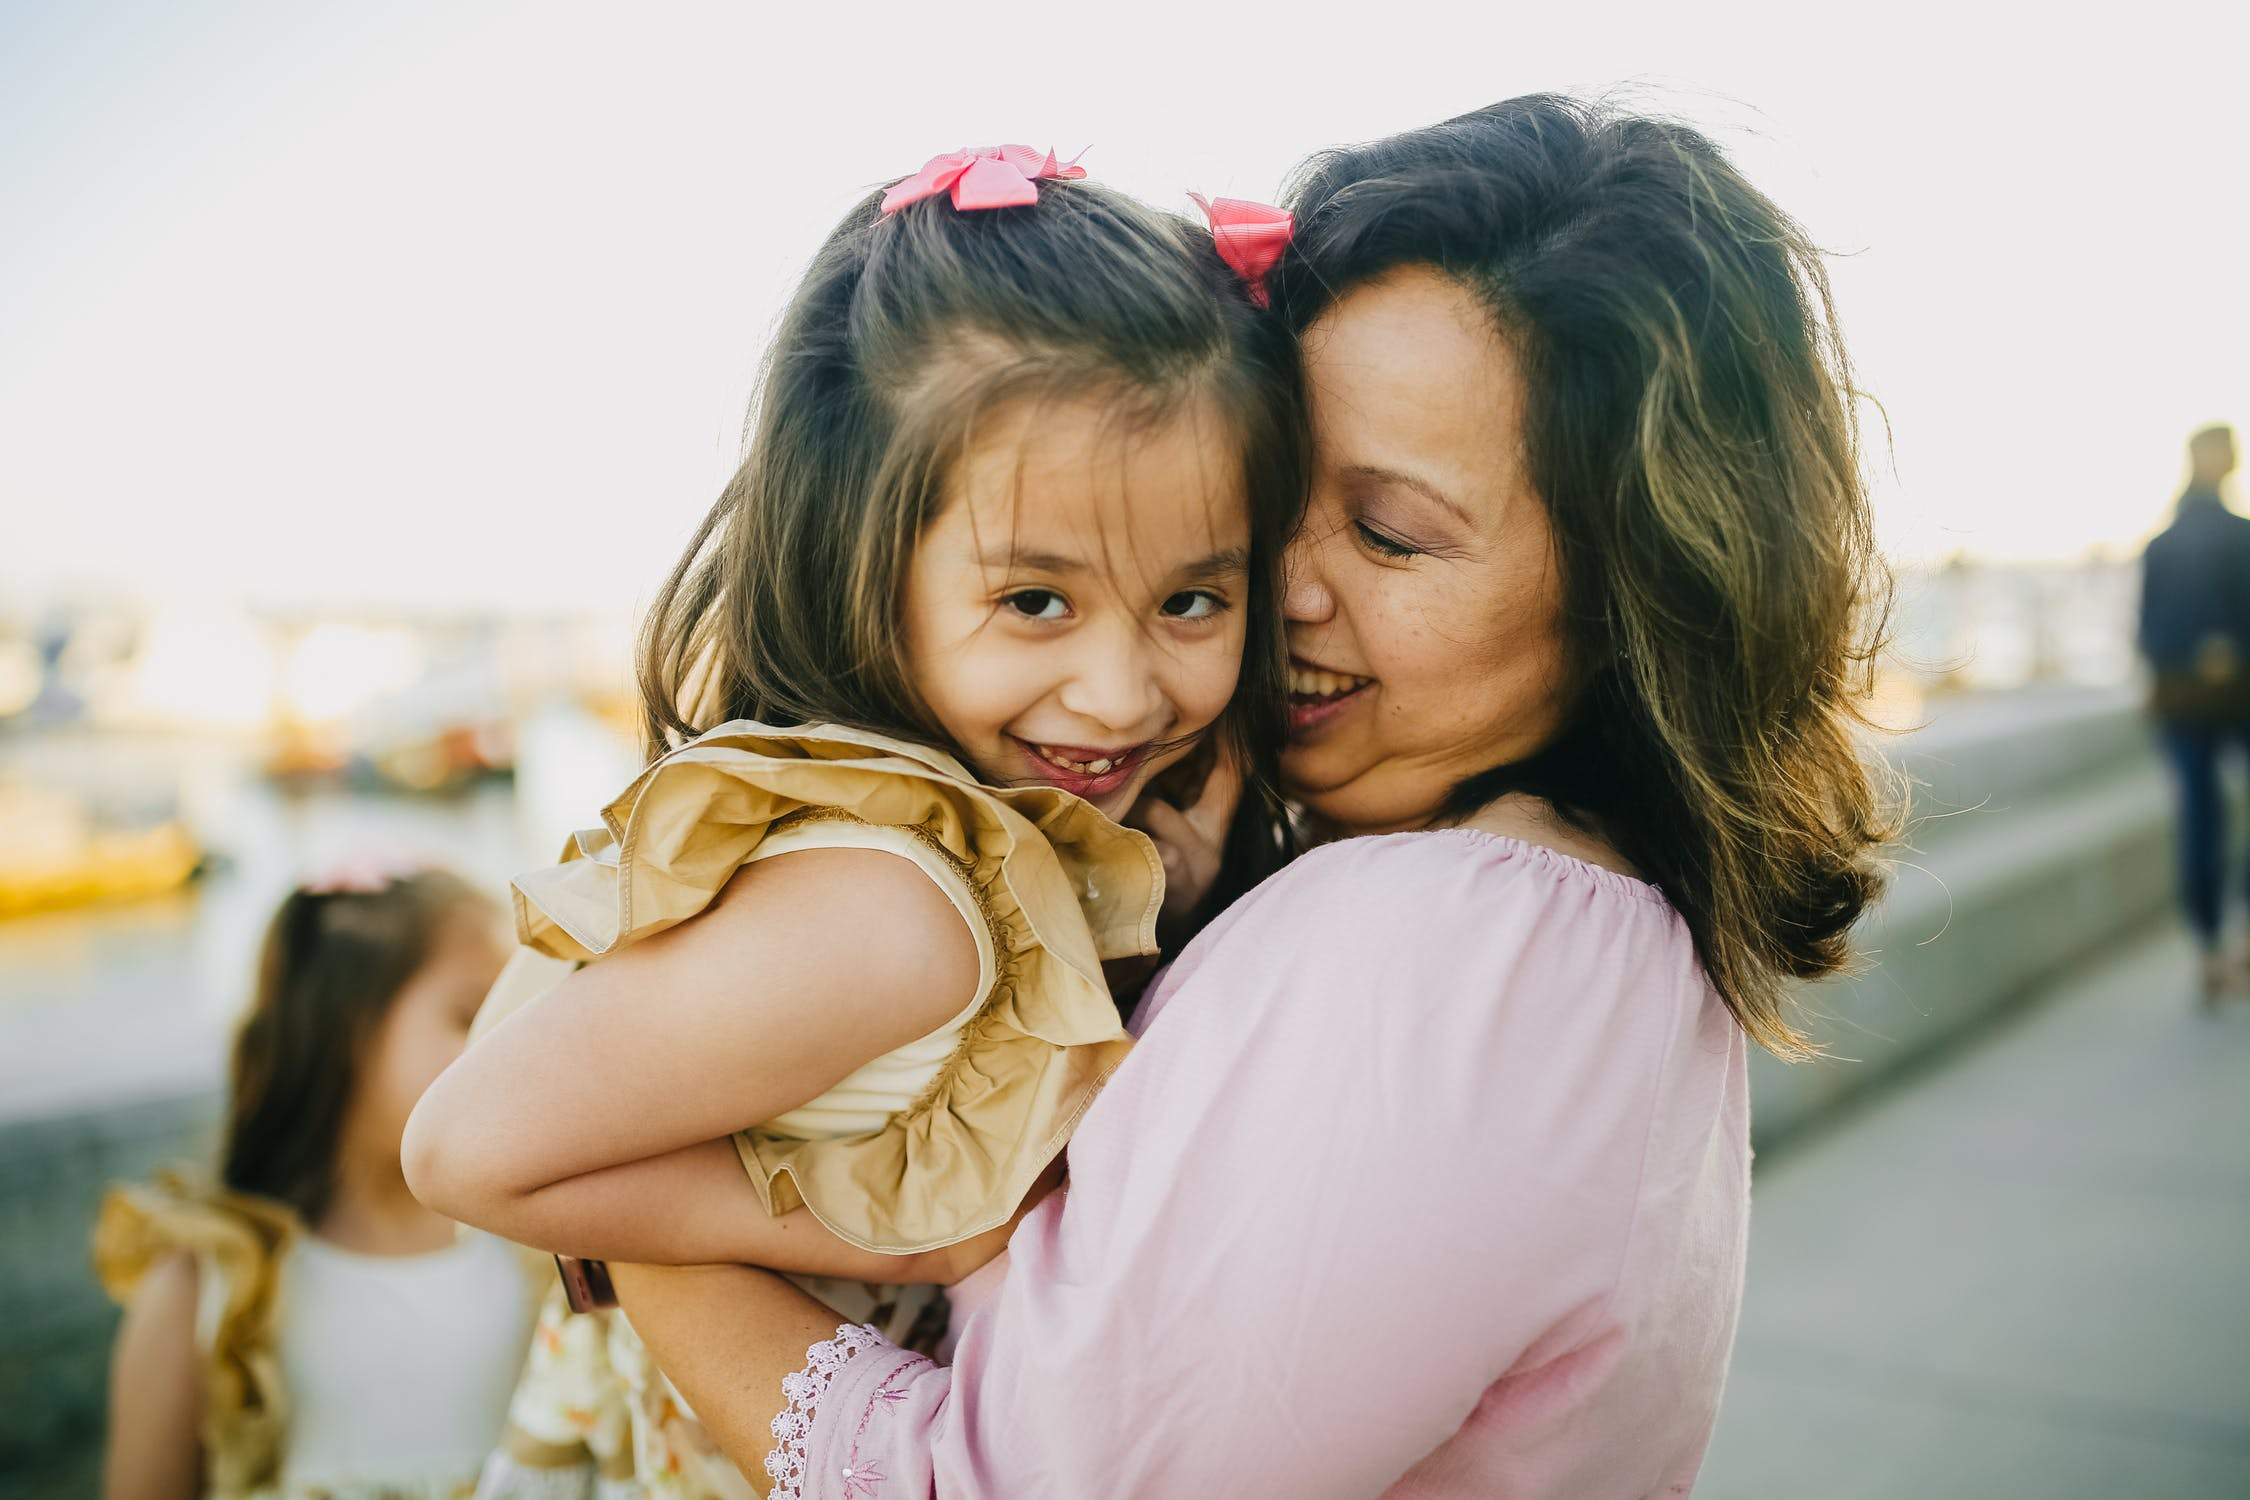 Mother and daughter | Source: Pexels